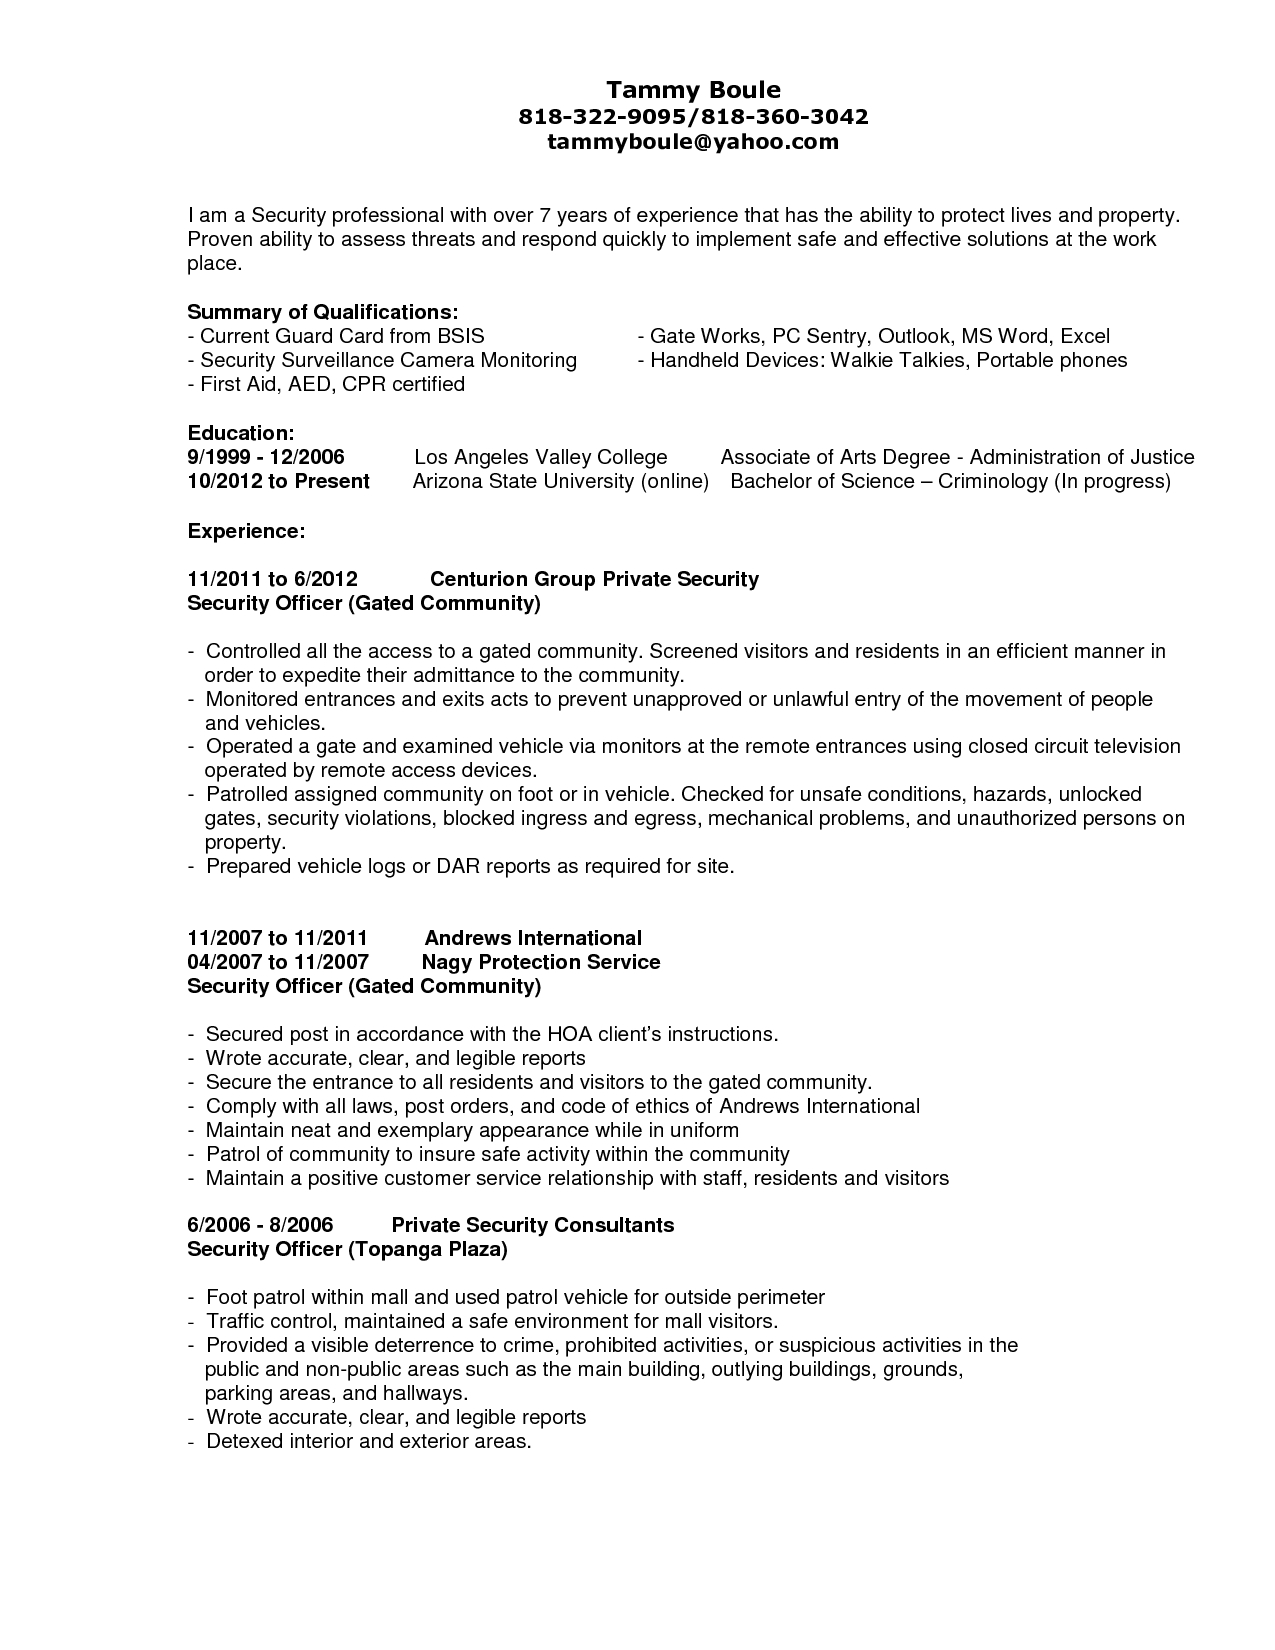 Security Officer Resume Template - Pin by Latestresume On Latest Resume Pinterest